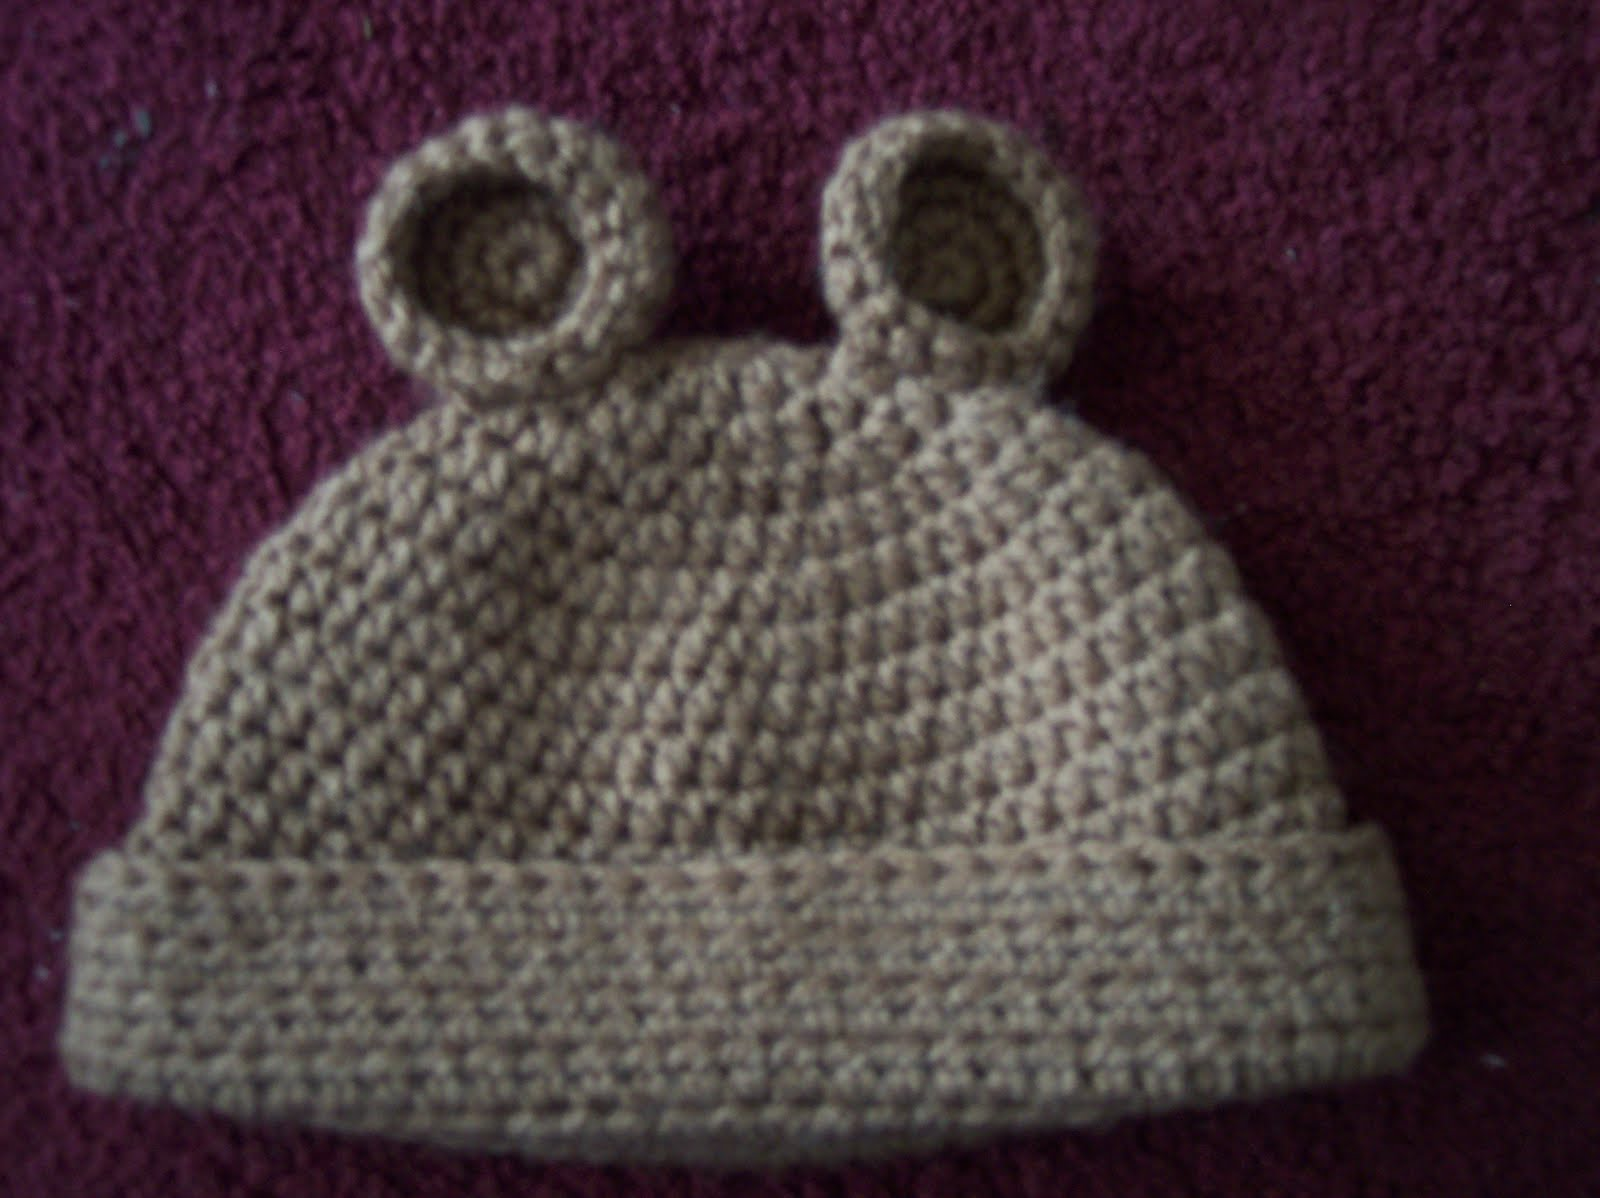 Crochet Baby Hat Pattern Double Crochet : The Crafty Crafter: Basic Half-Double Crochet Hat